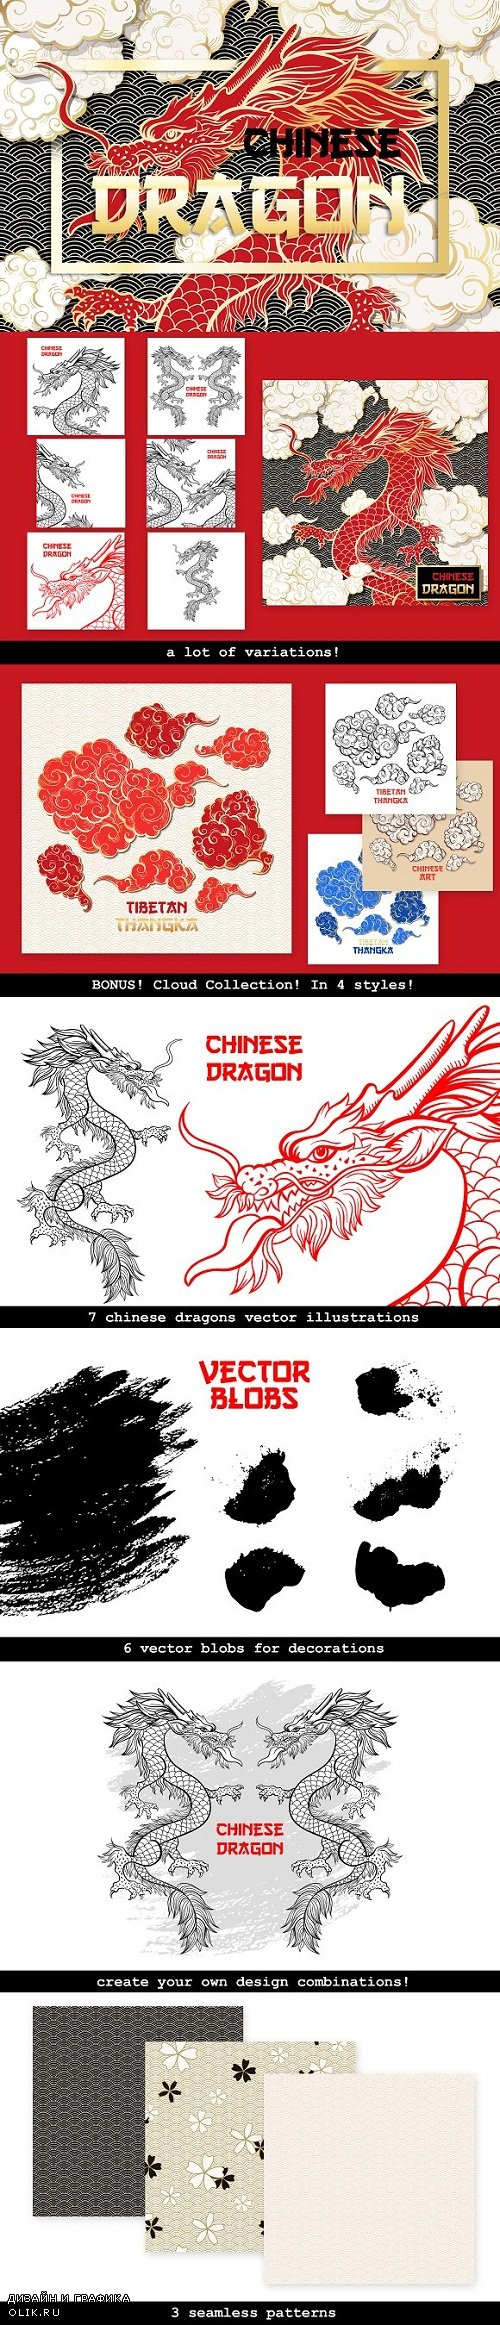 Chinese Dragon Vector Illustrations - 3501665